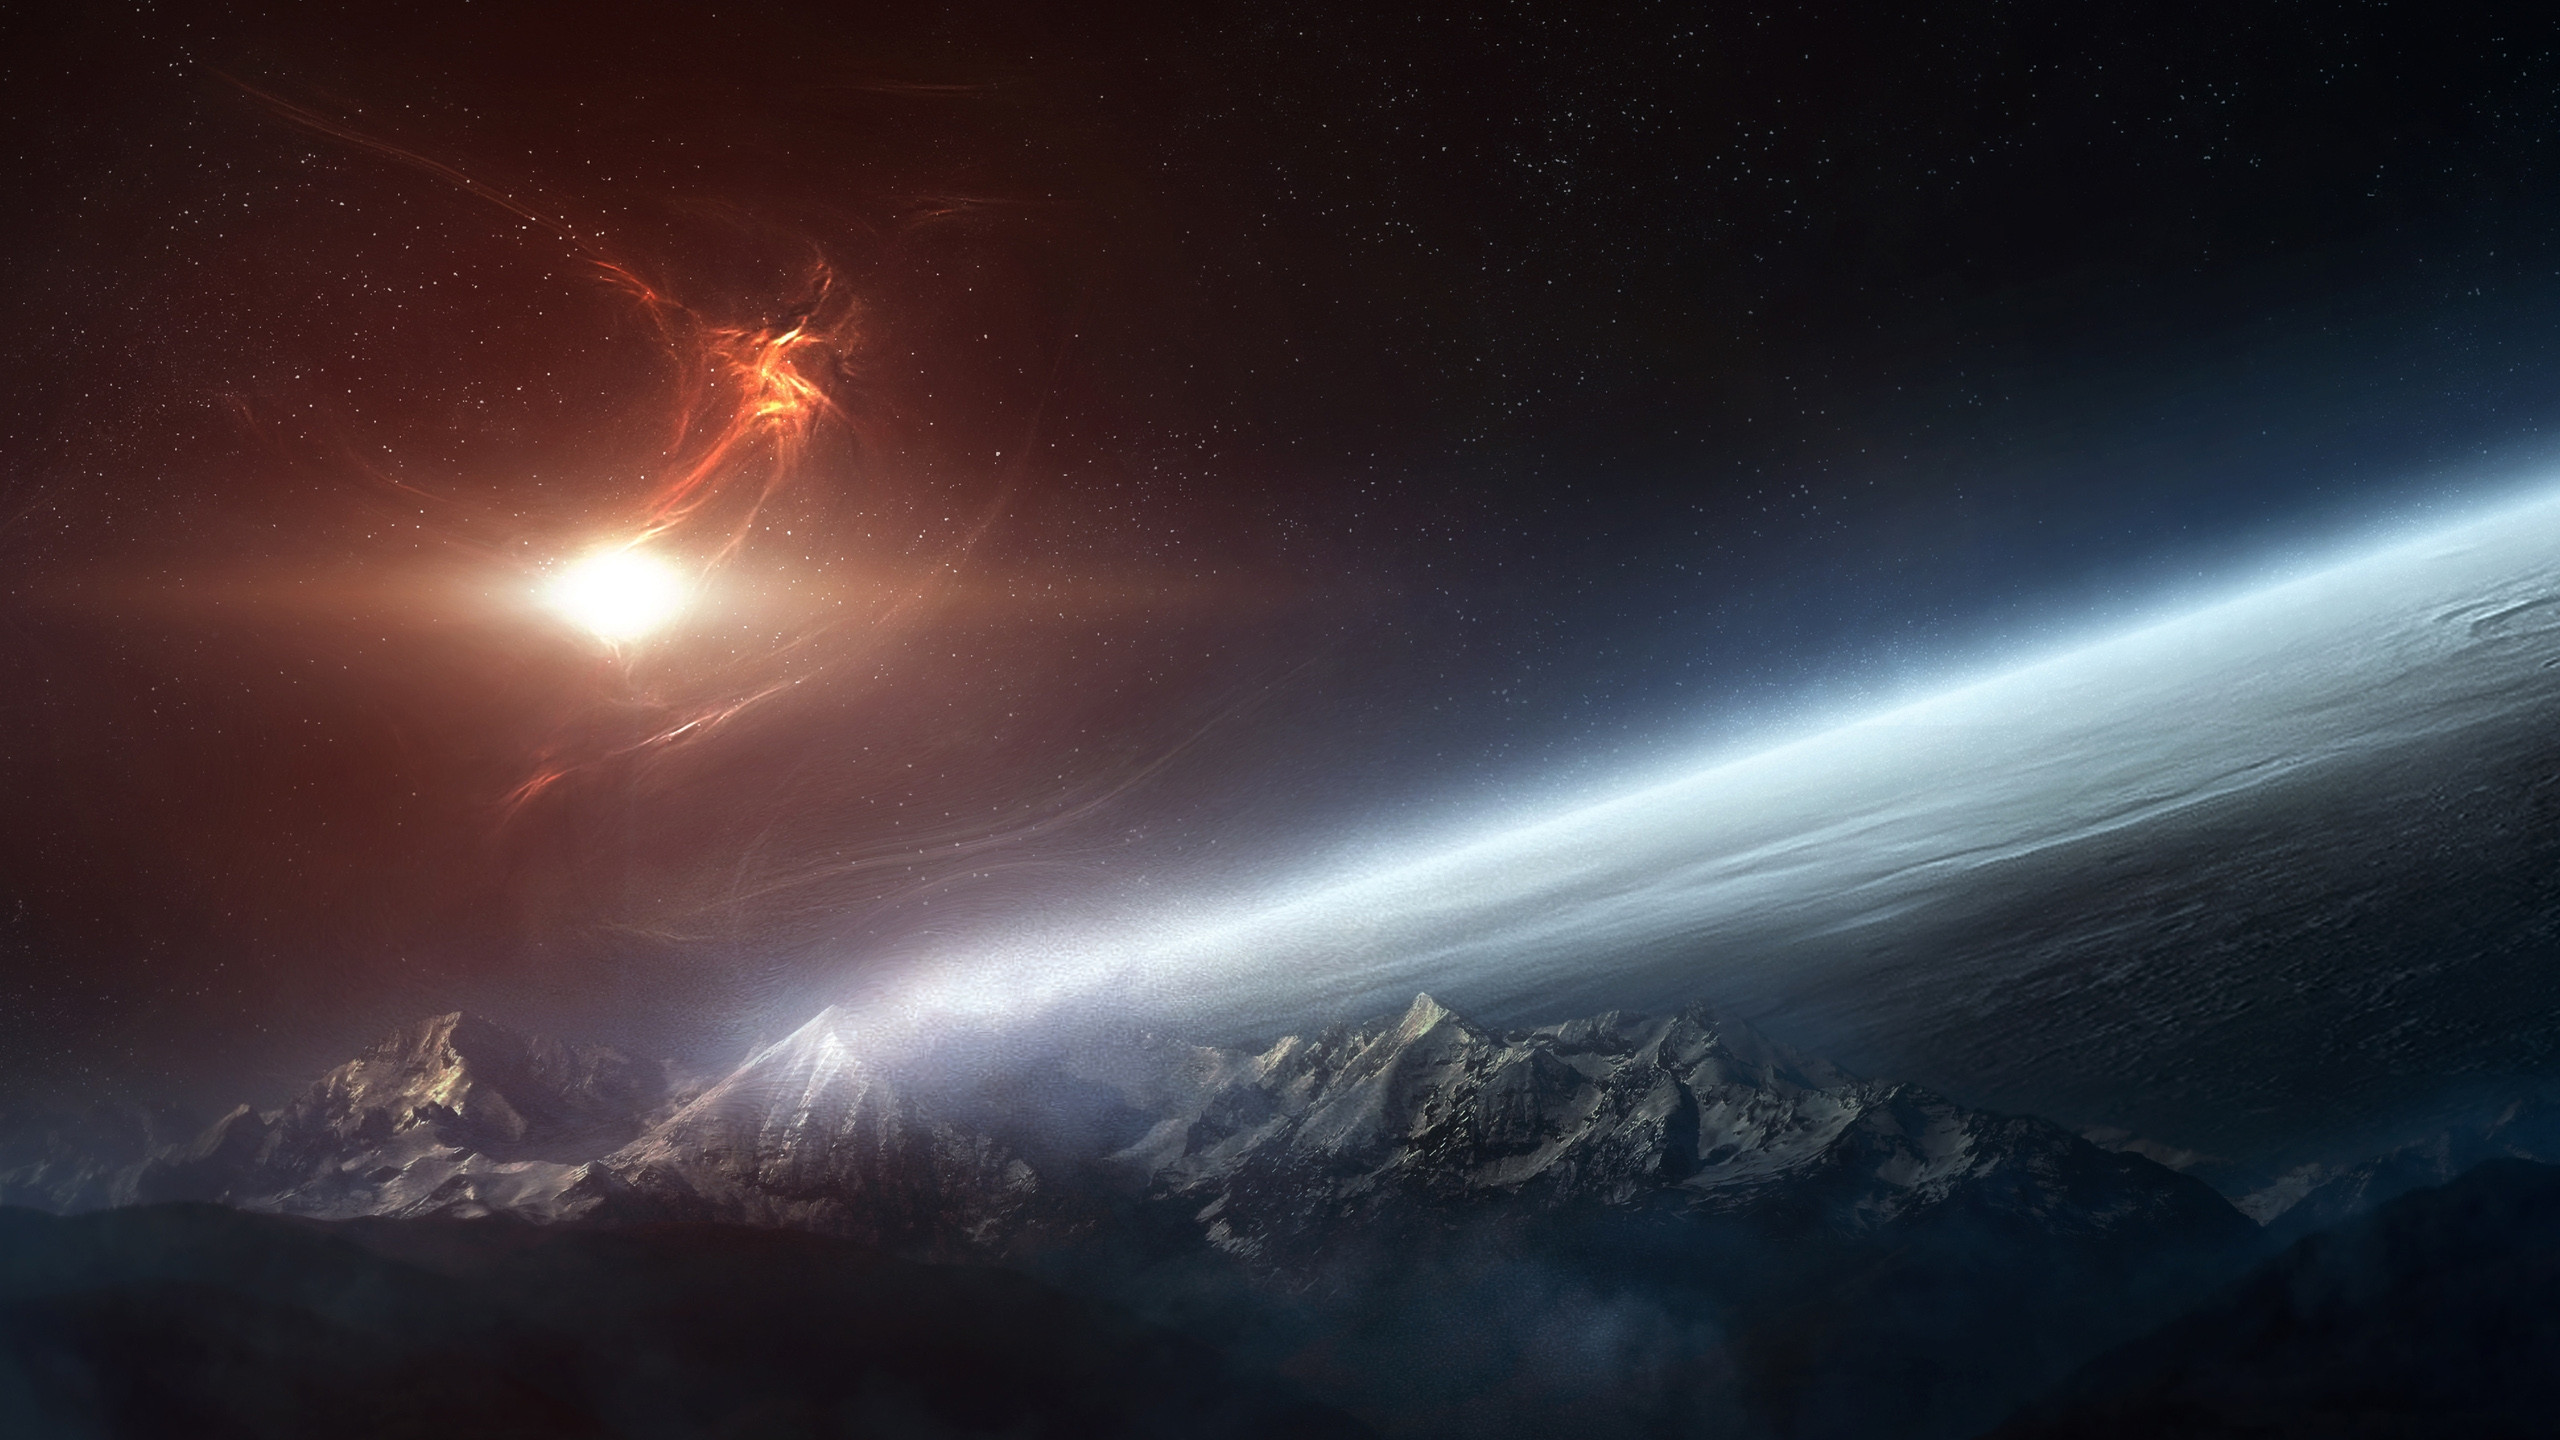 Download Ipad Space Wallpaper Hd Gallery: 2560x1440 Space Desktop PC And Mac Wallpaper